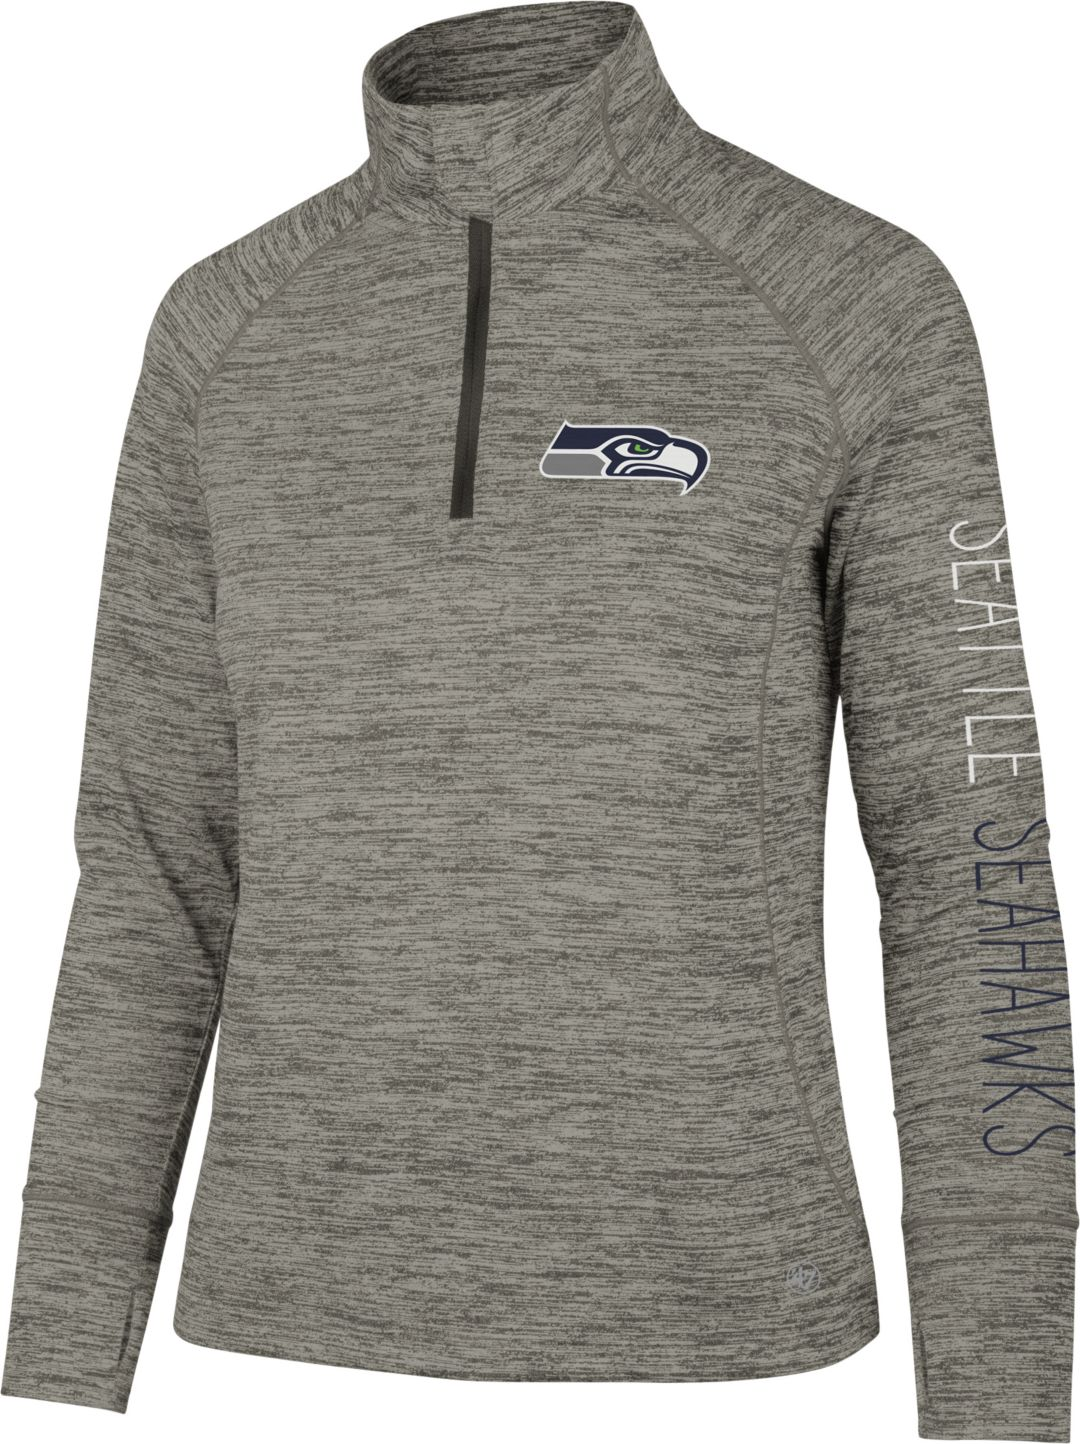 separation shoes 1fede 946f3 '47 Women's Seattle Seahawks Impact Grey Quarter-Zip Pullover